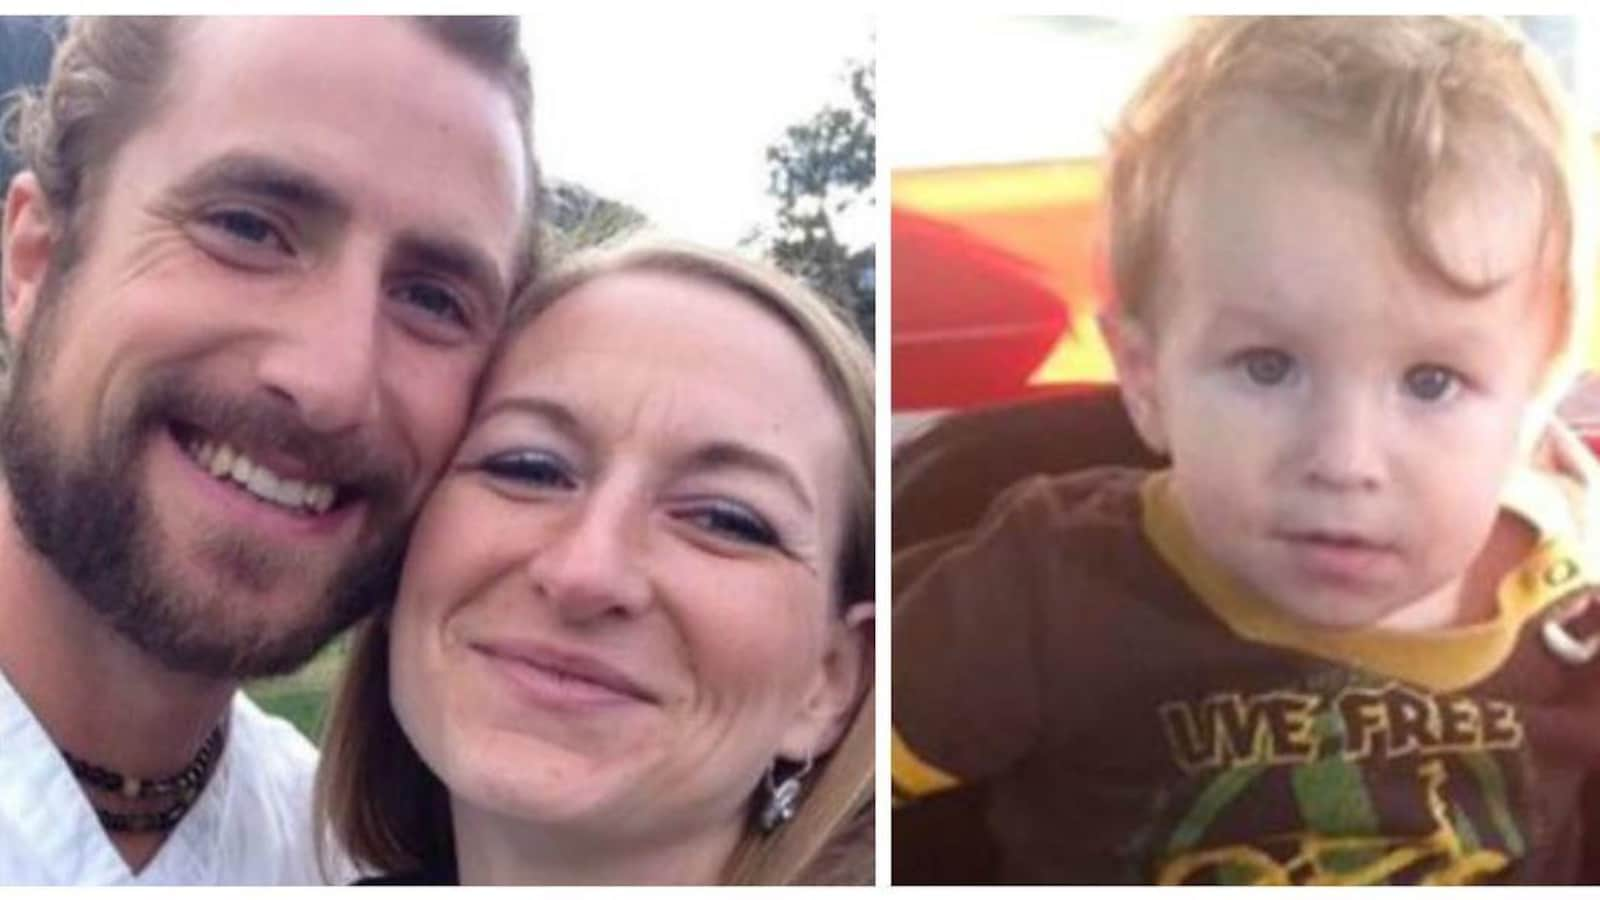 Un collage de deux photos. À gauche, une photo des parents souriants. À droite, une photo du garçonnet blond.